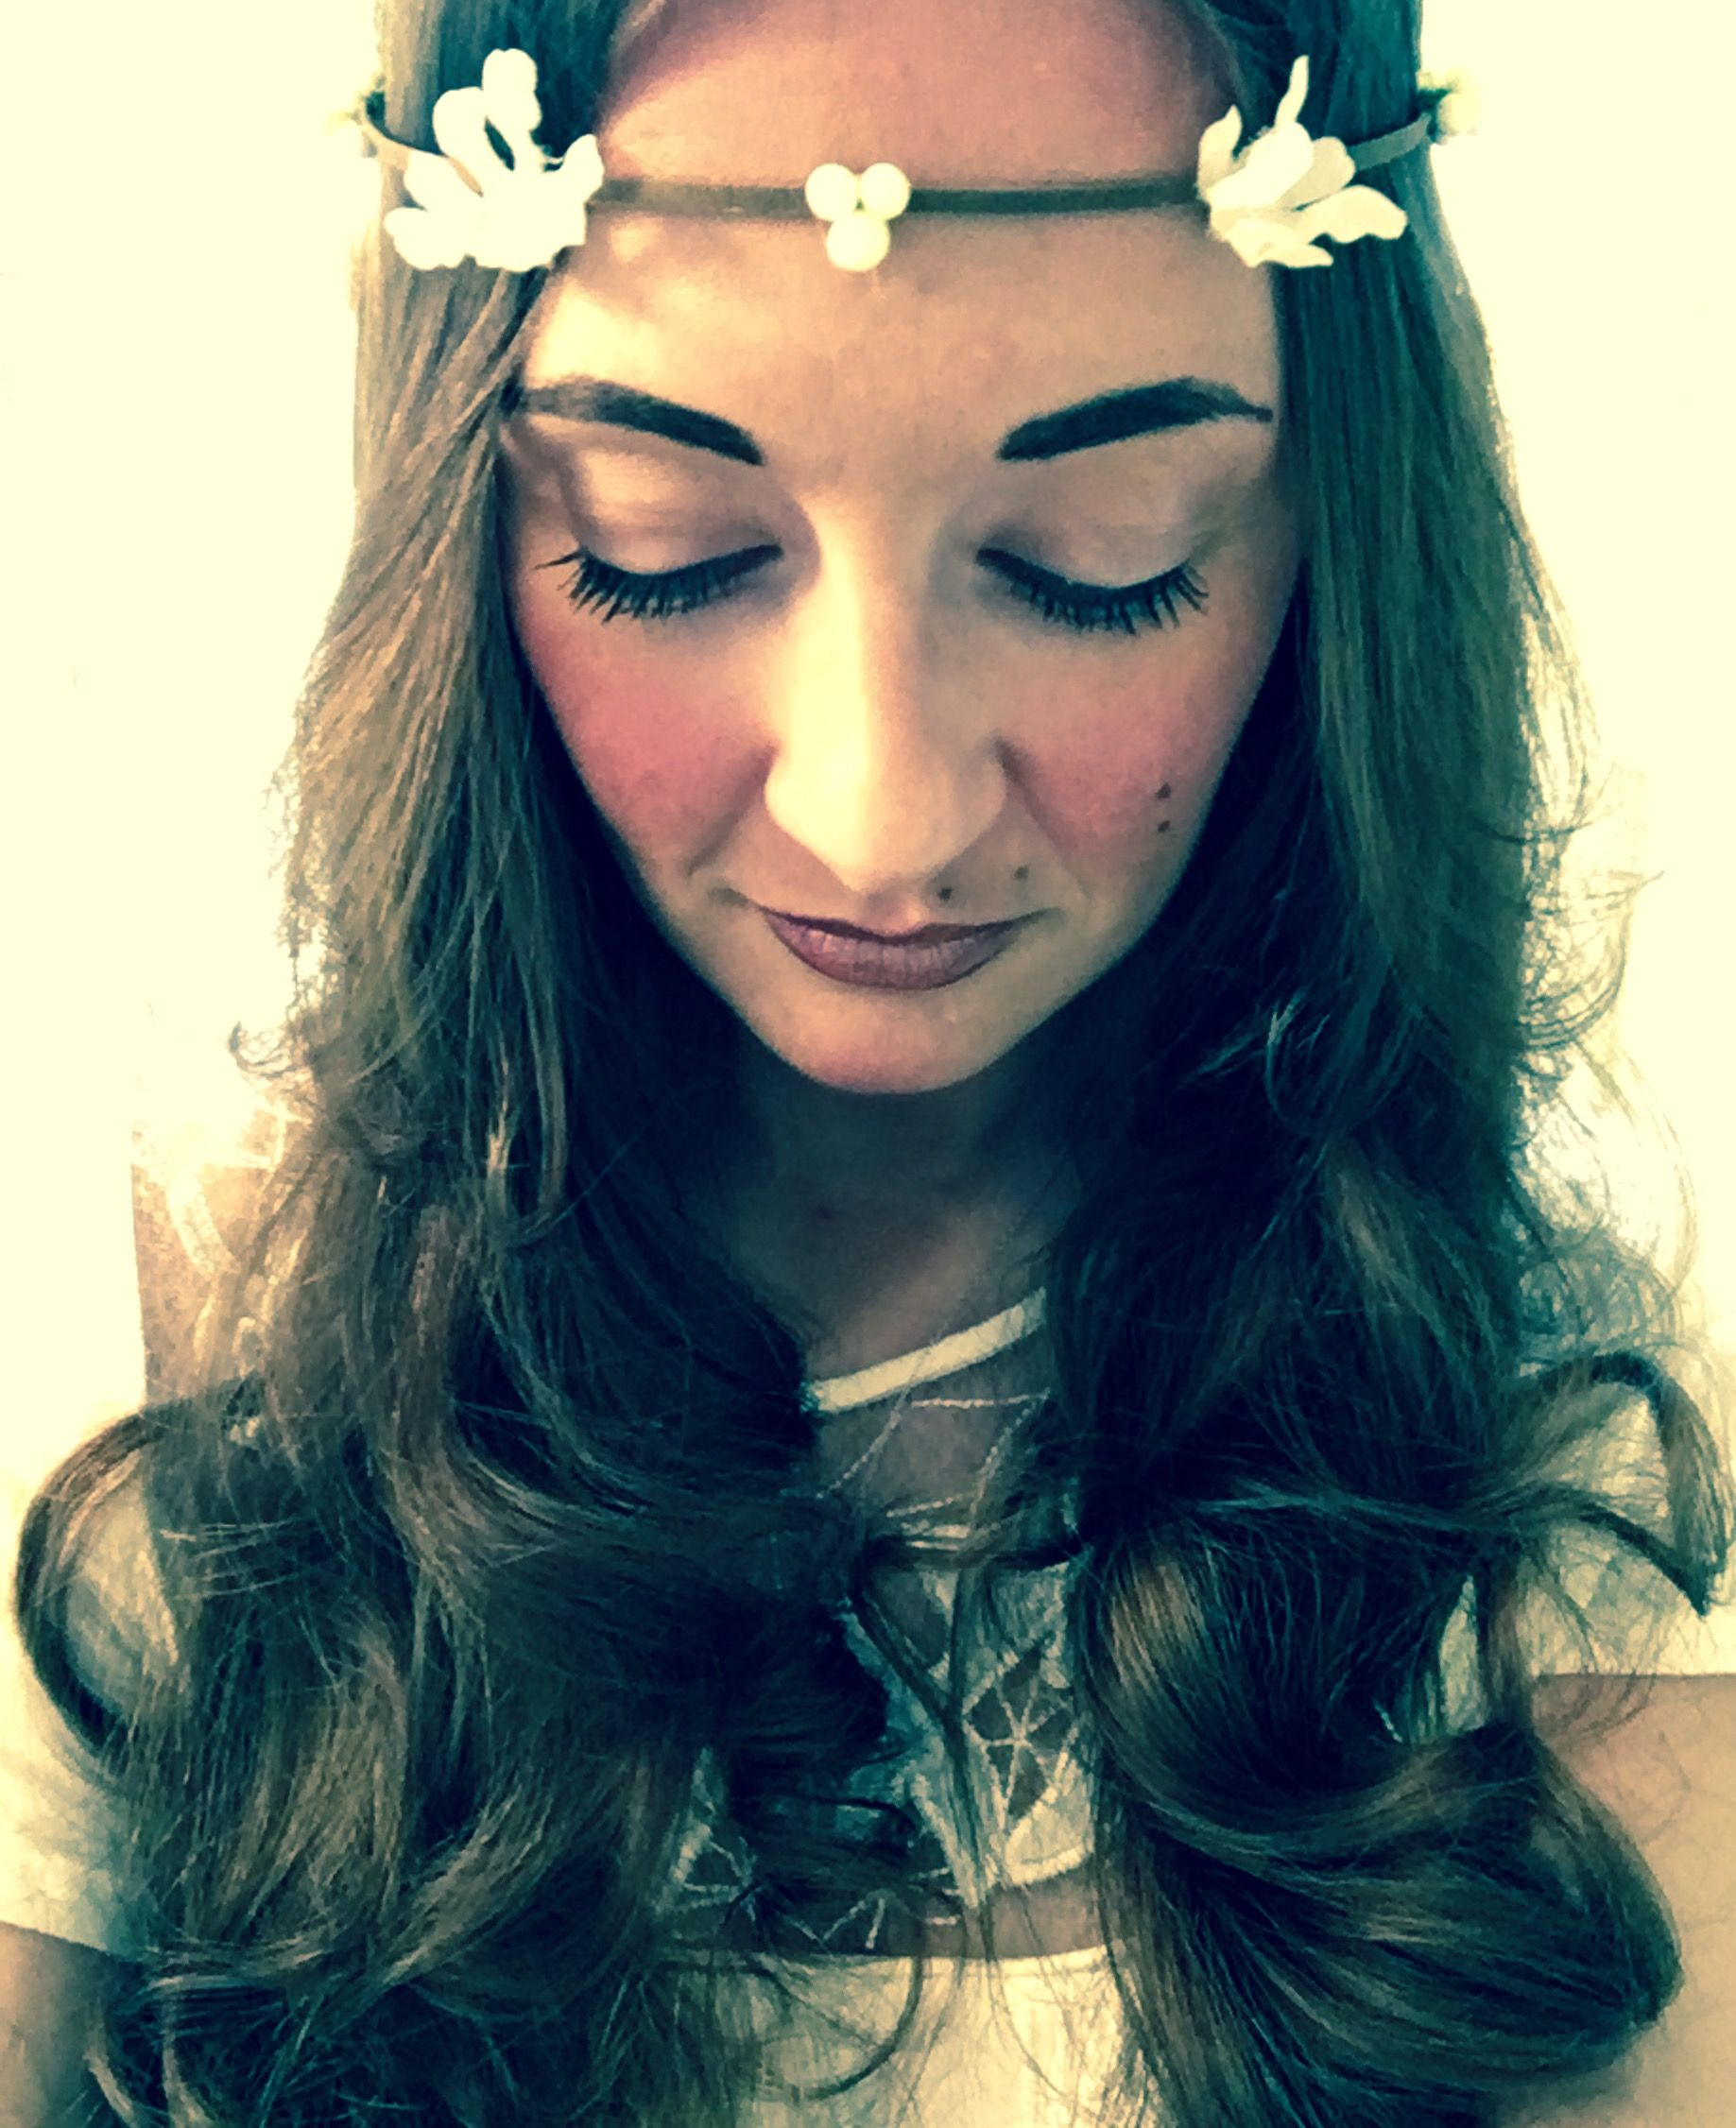 I Love The Floral Crown/headband Trend But I'm Not Sure I